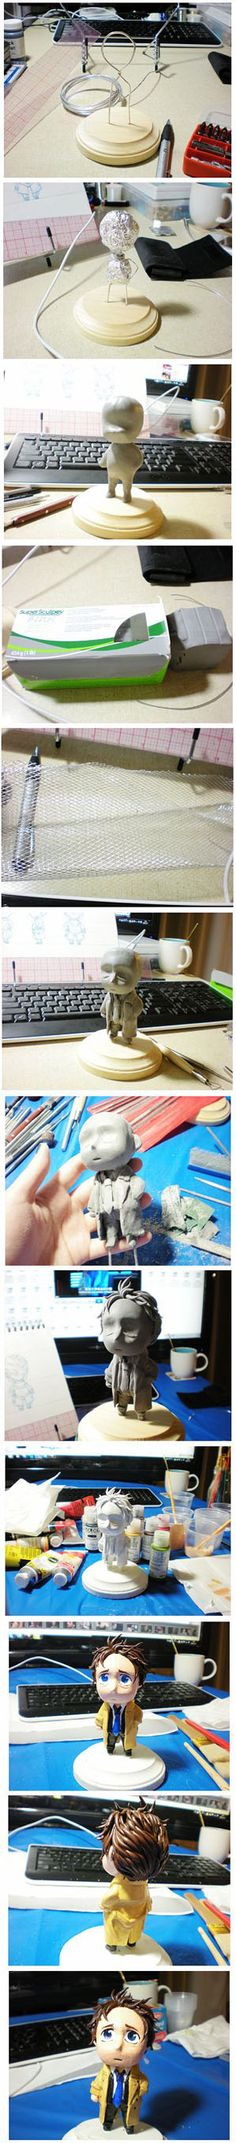 Castiel Figure Tutorial by BX211.deviantart.com on @deviantART